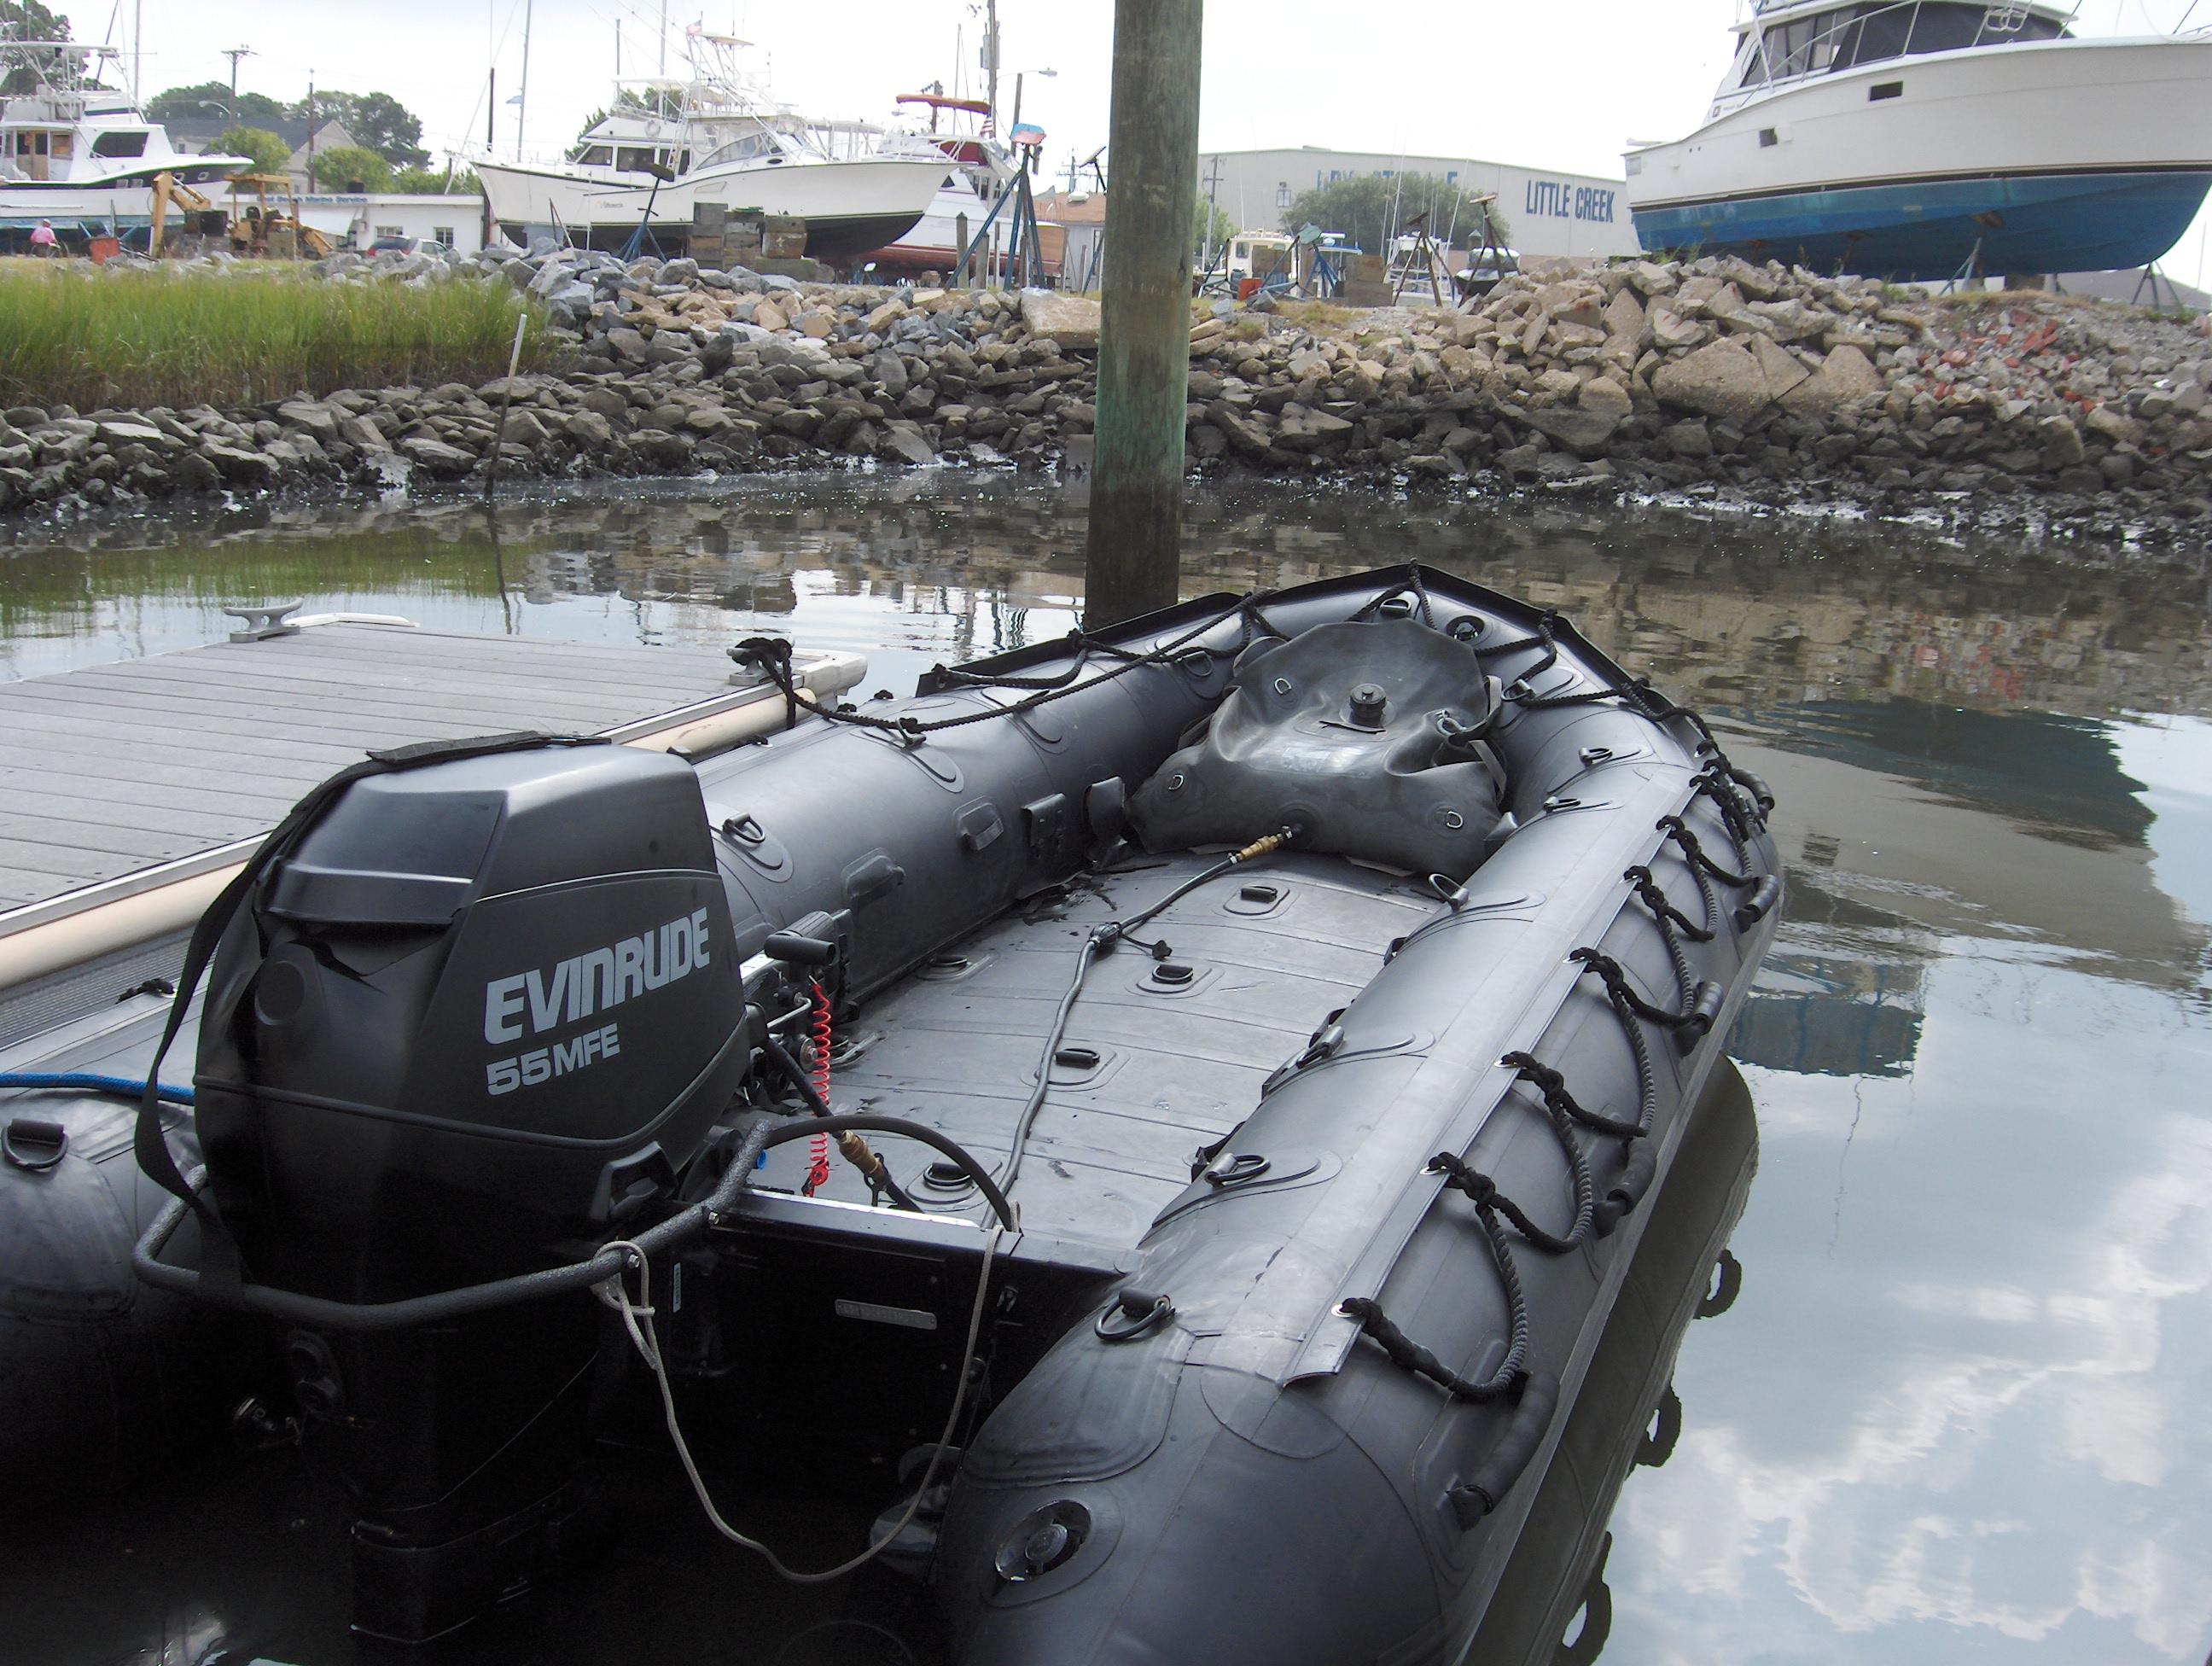 Zodiac Milpro Military Ribs & Inflatable Boats   www